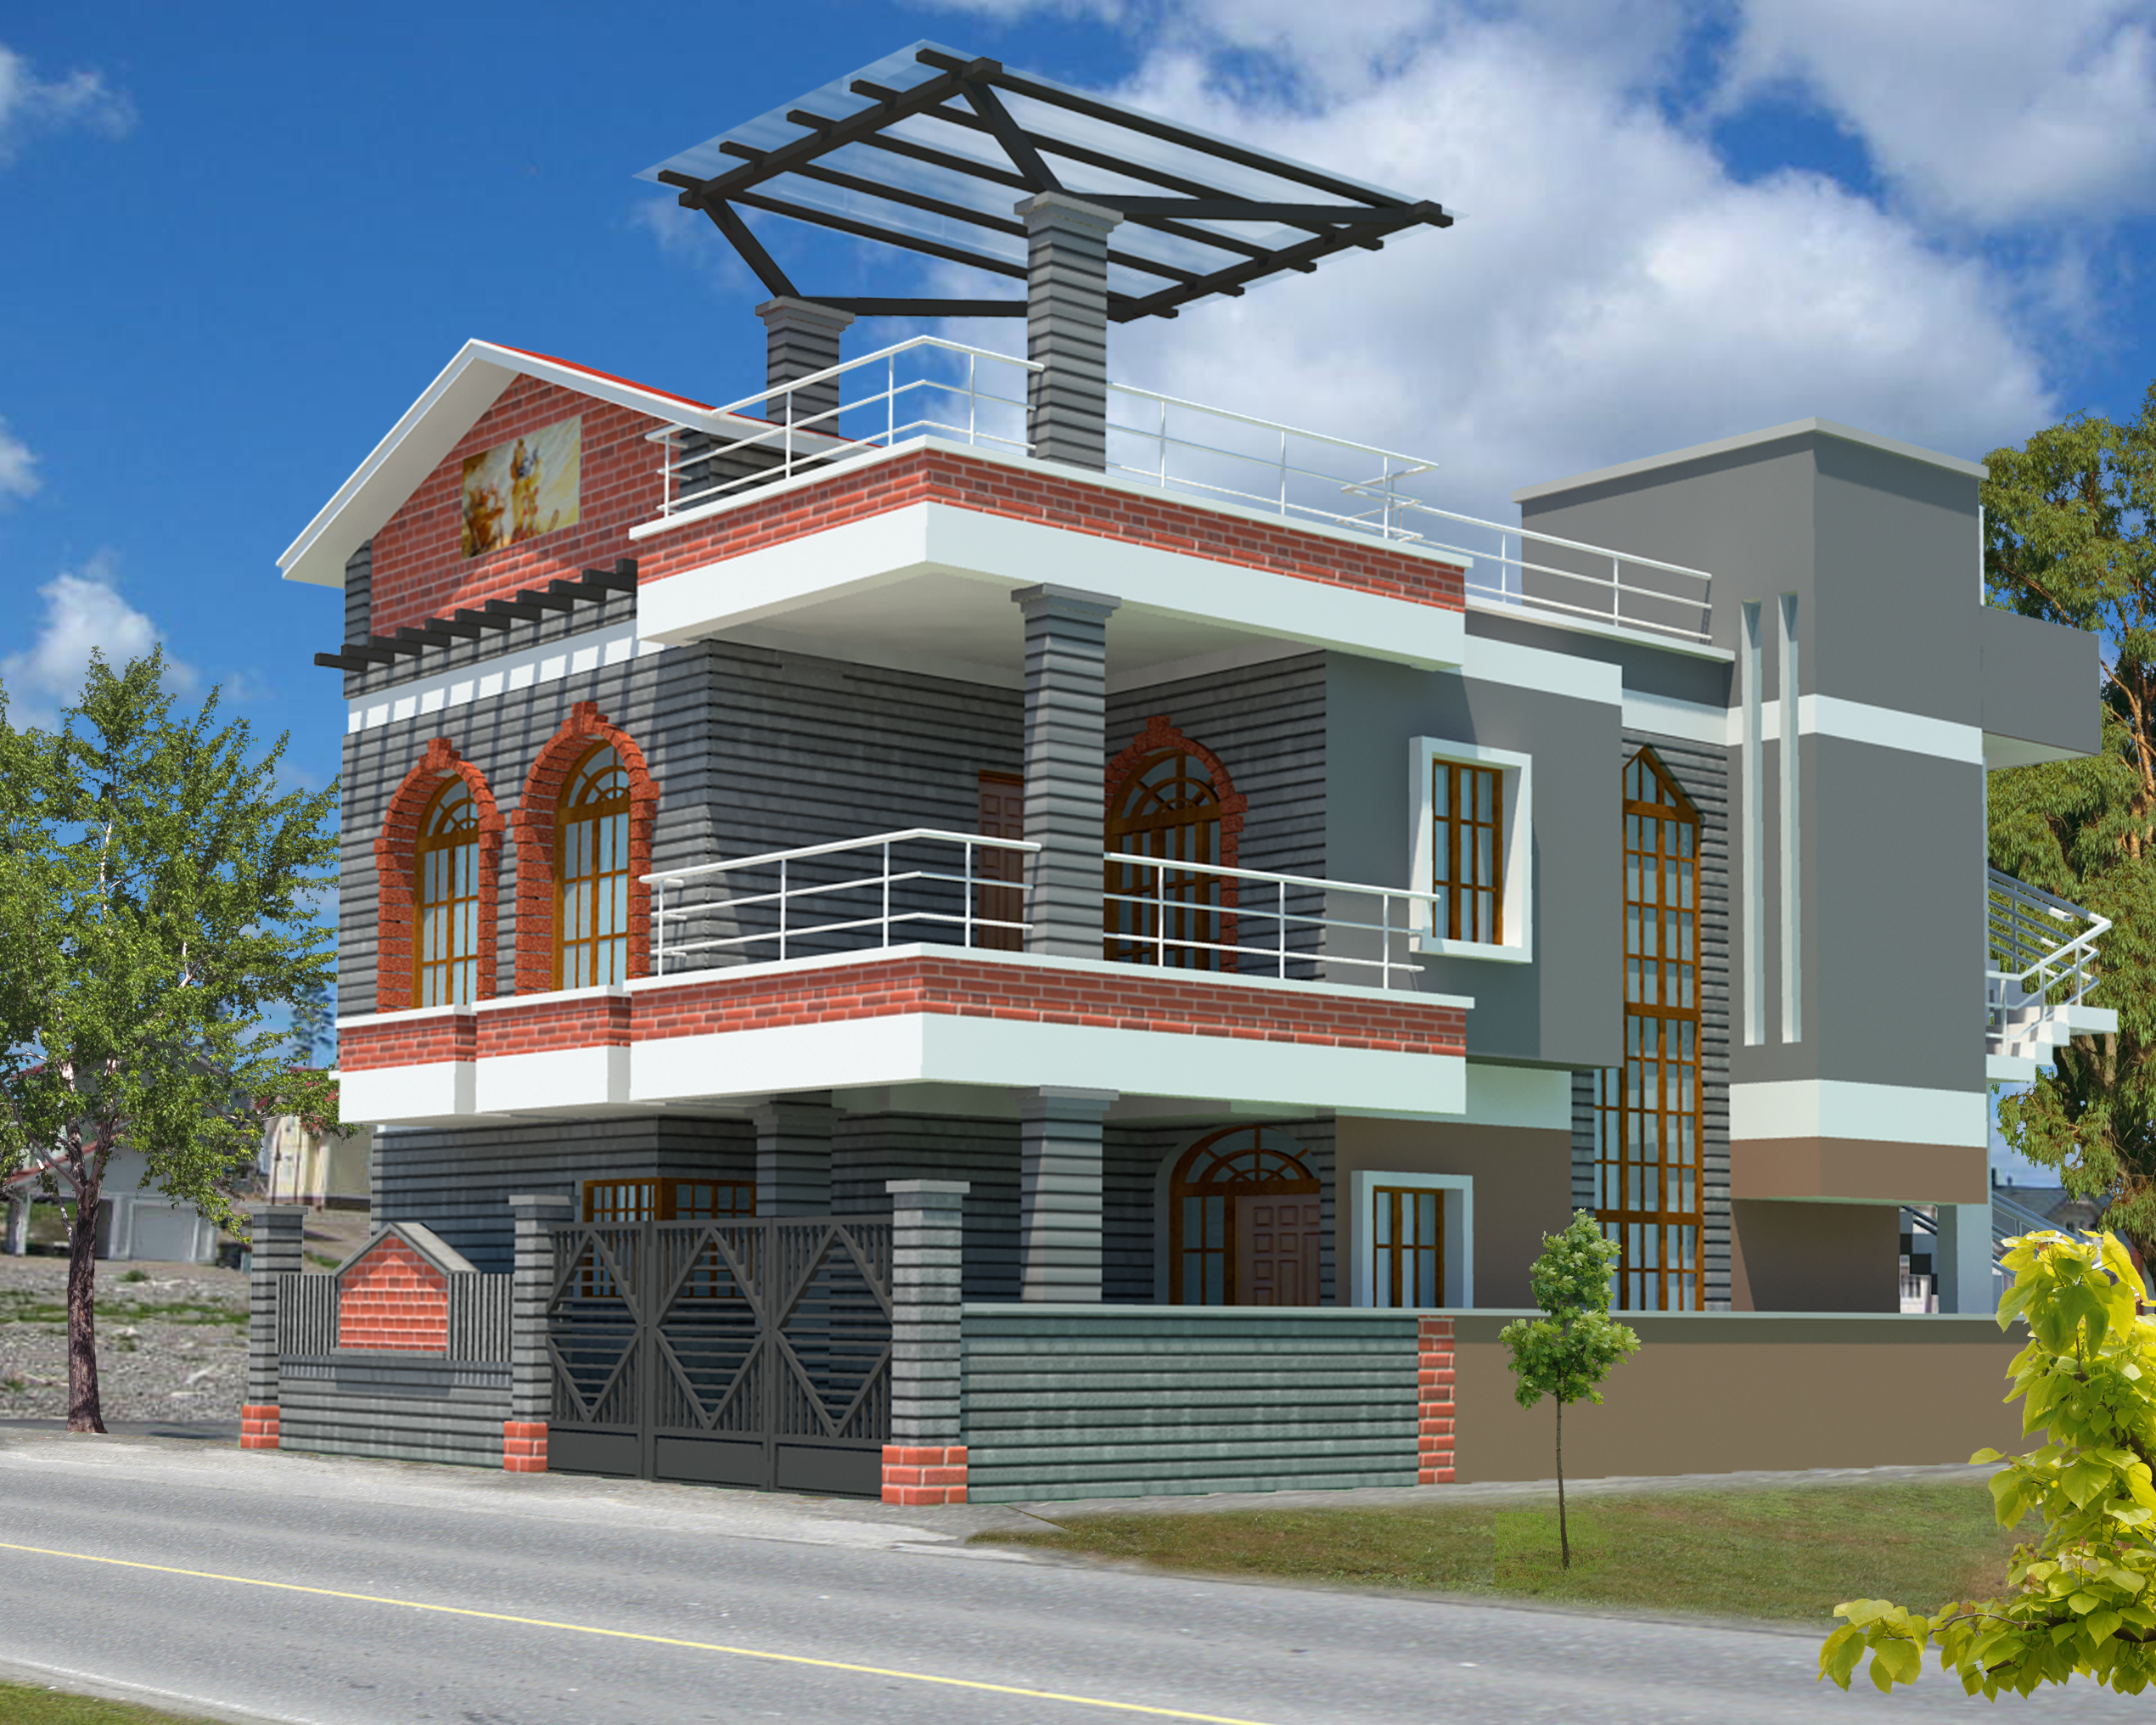 Interior Exterior Plan Make Use Of Websites To Build A: house 3d model